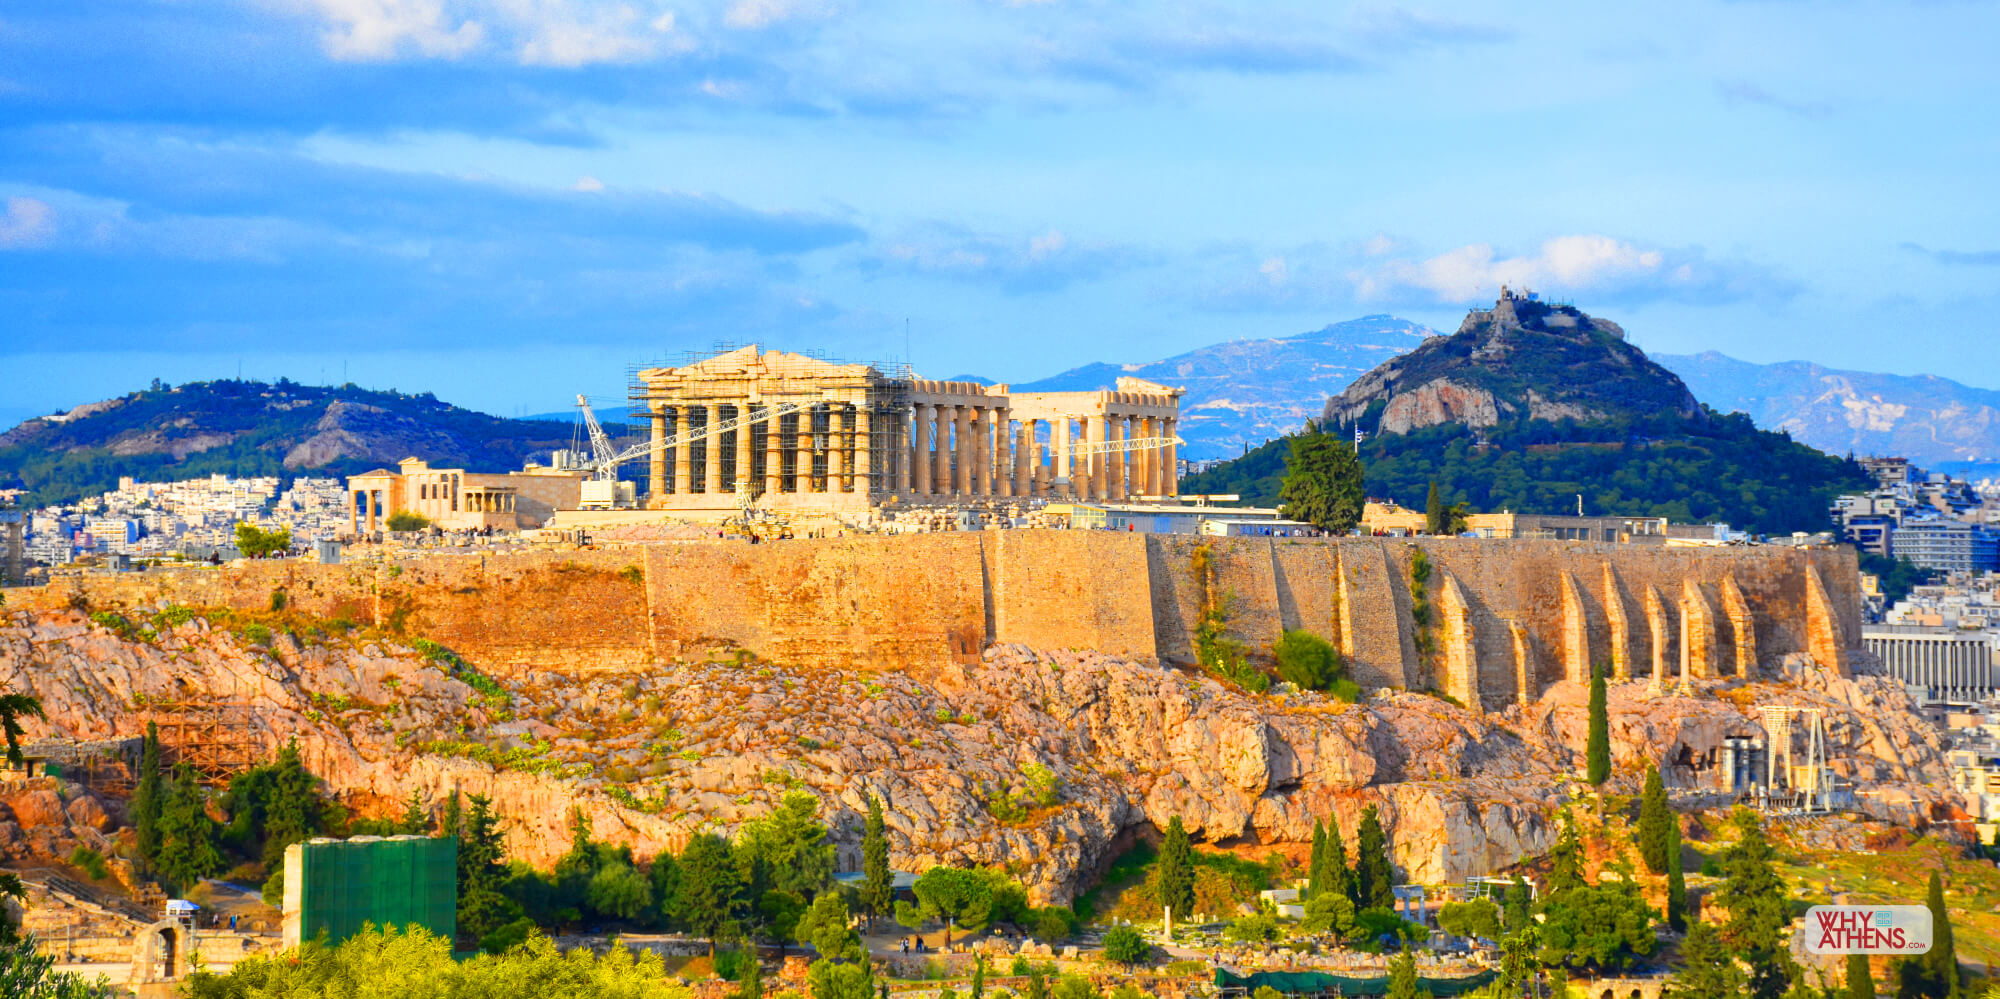 Greece was a much harder place to live than Egypt, because the soil was not as good and there was not always enough water to grow plants for food. Greek history is usually divided into a Stone Age, a Bronze Age, and an Iron Age